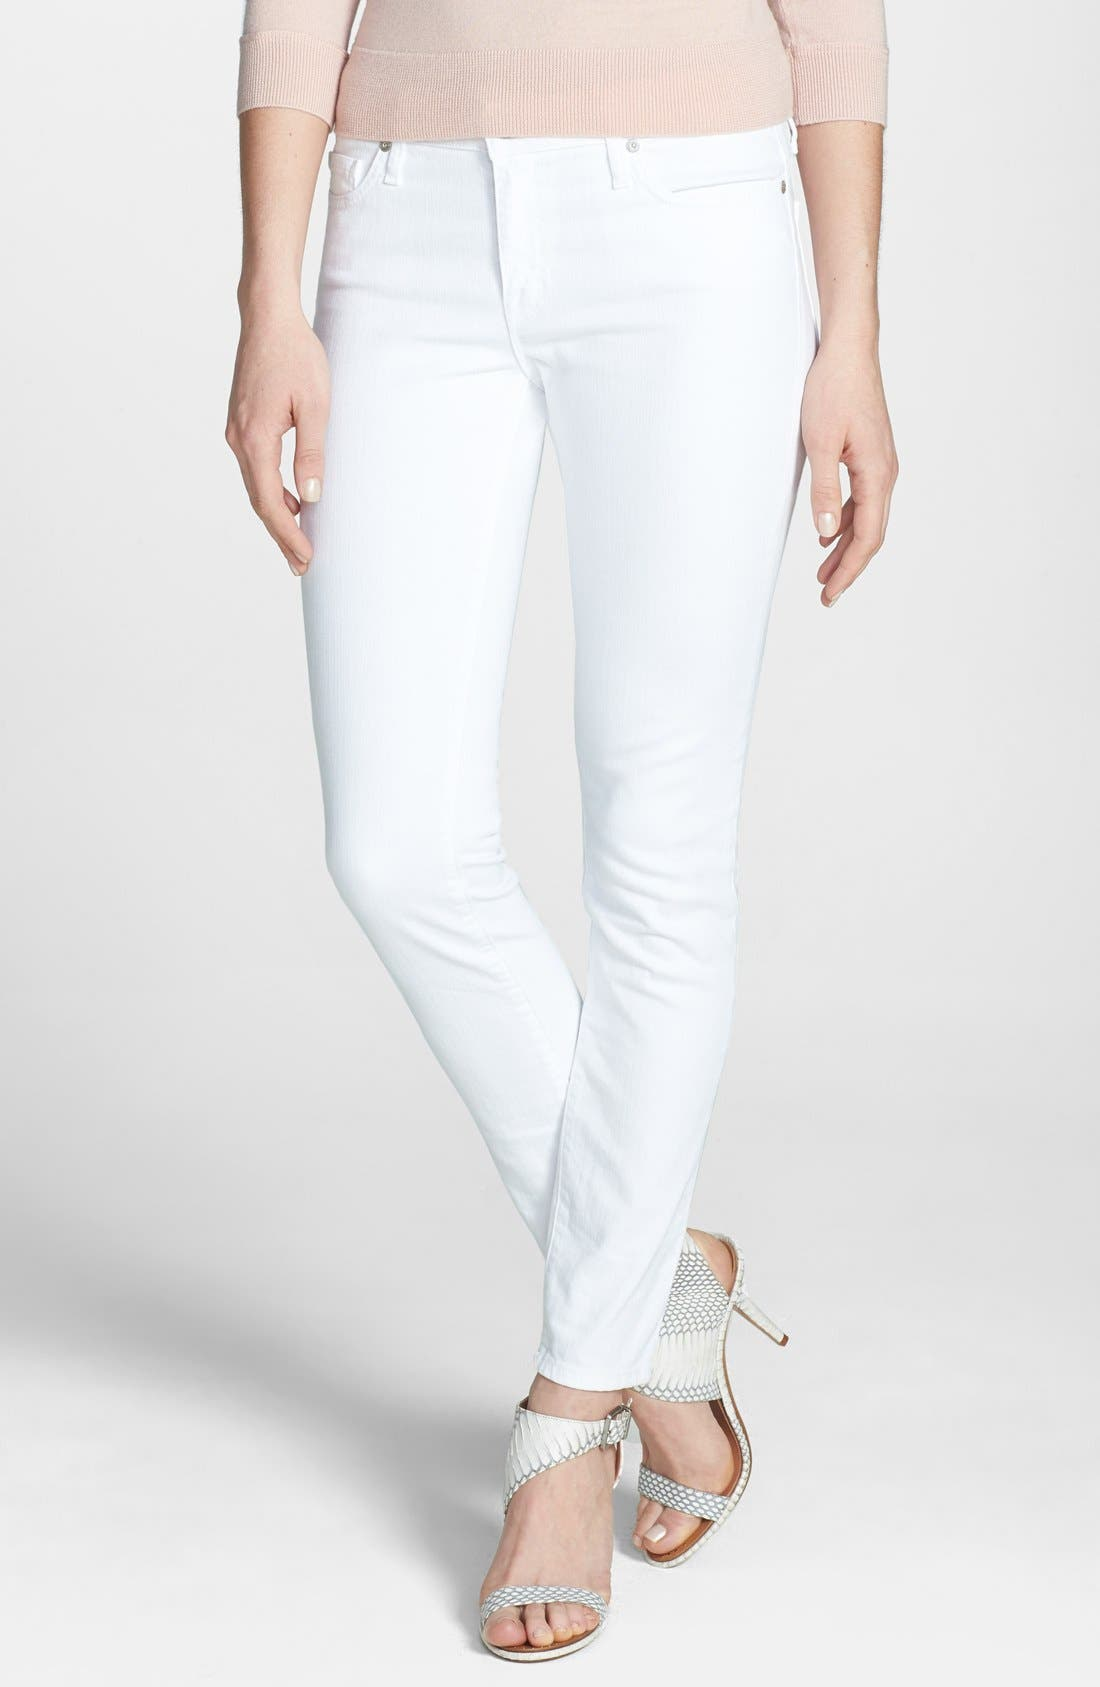 Main Image - Joie Mid Rise Stretch Skinny Jeans (Dandelion White)